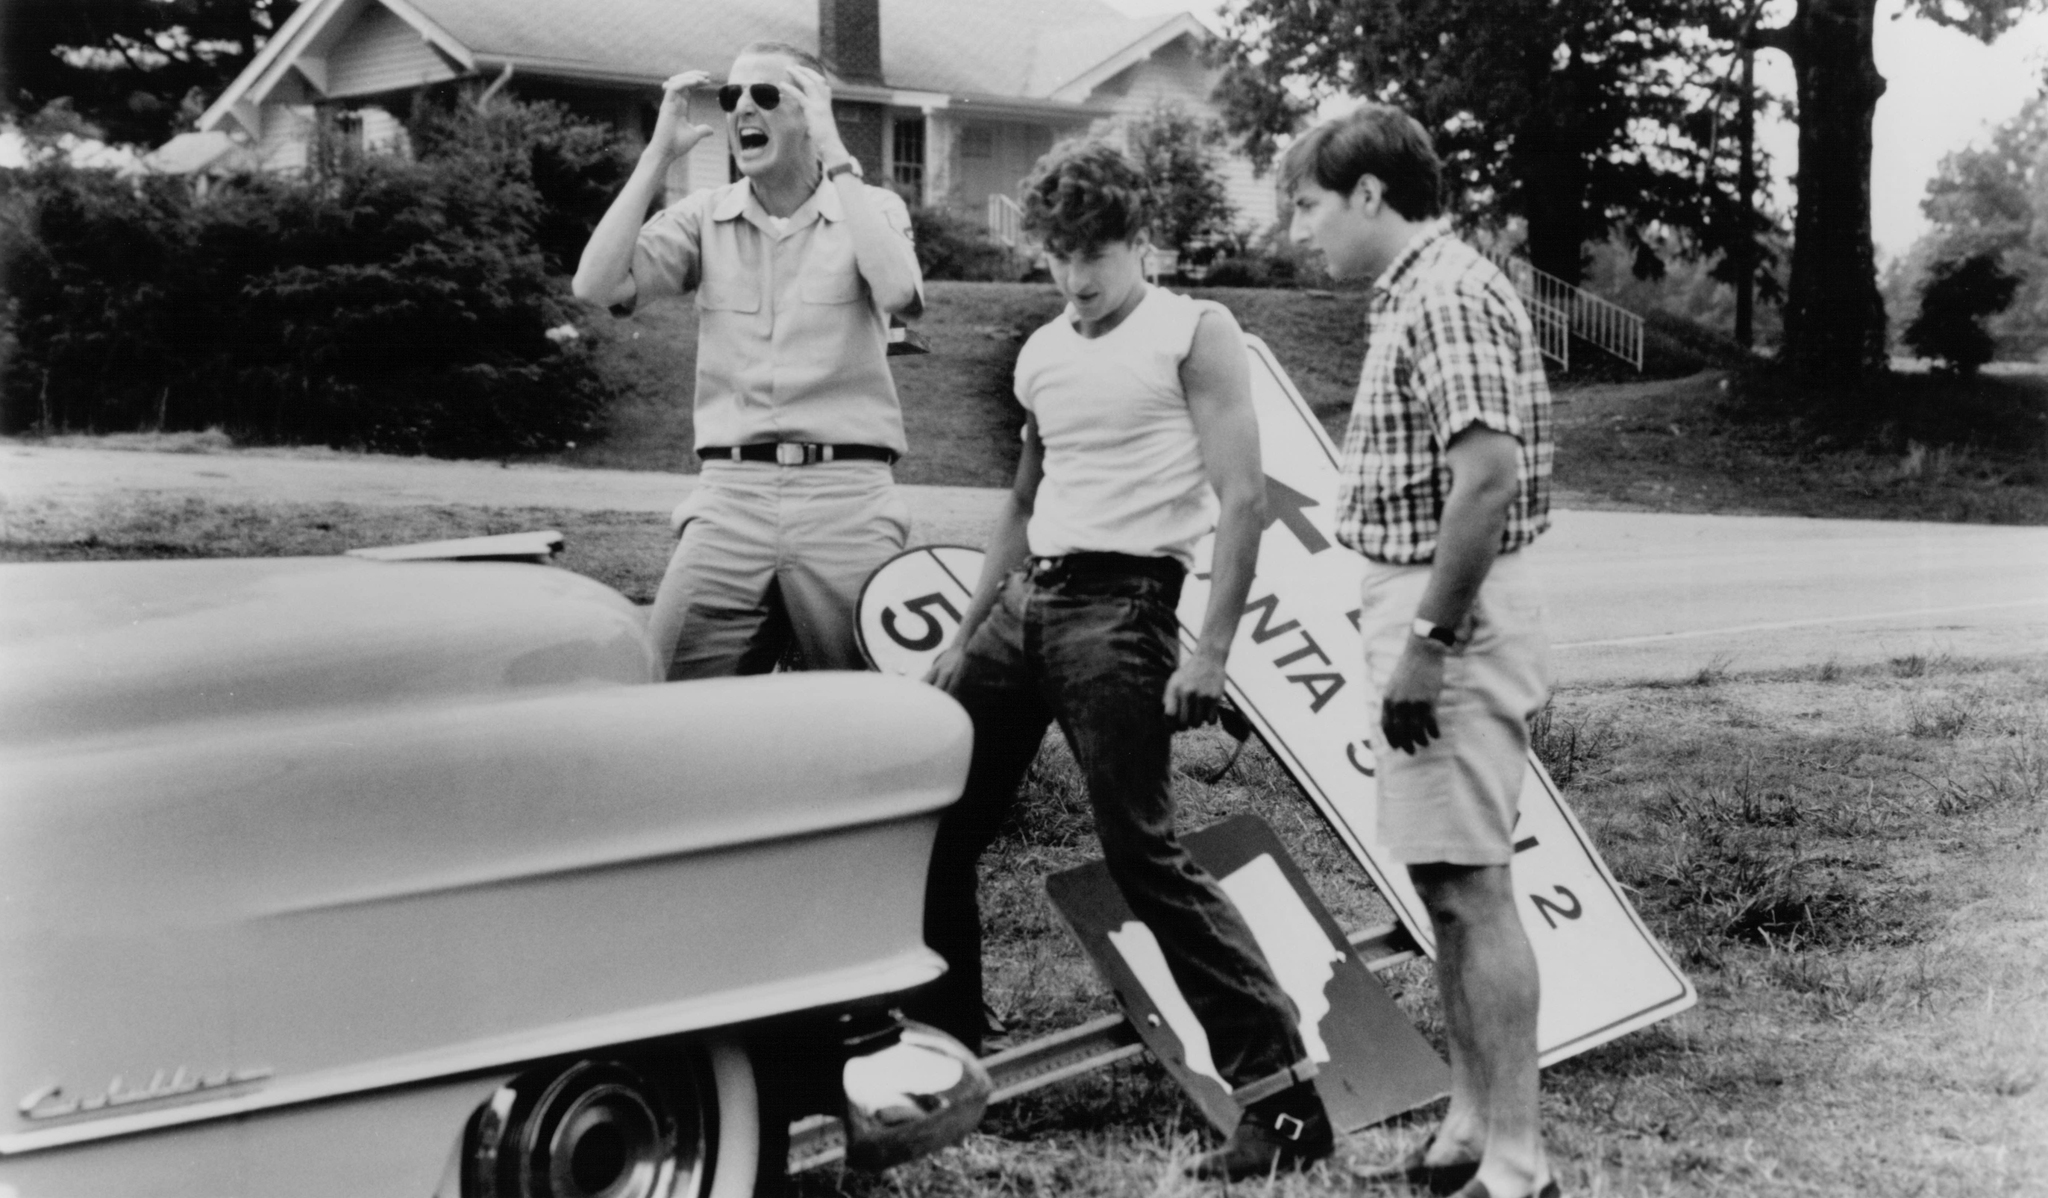 Patrick Dempsey, Arye Gross, and Daniel Stern in Coupe de Ville (1990)